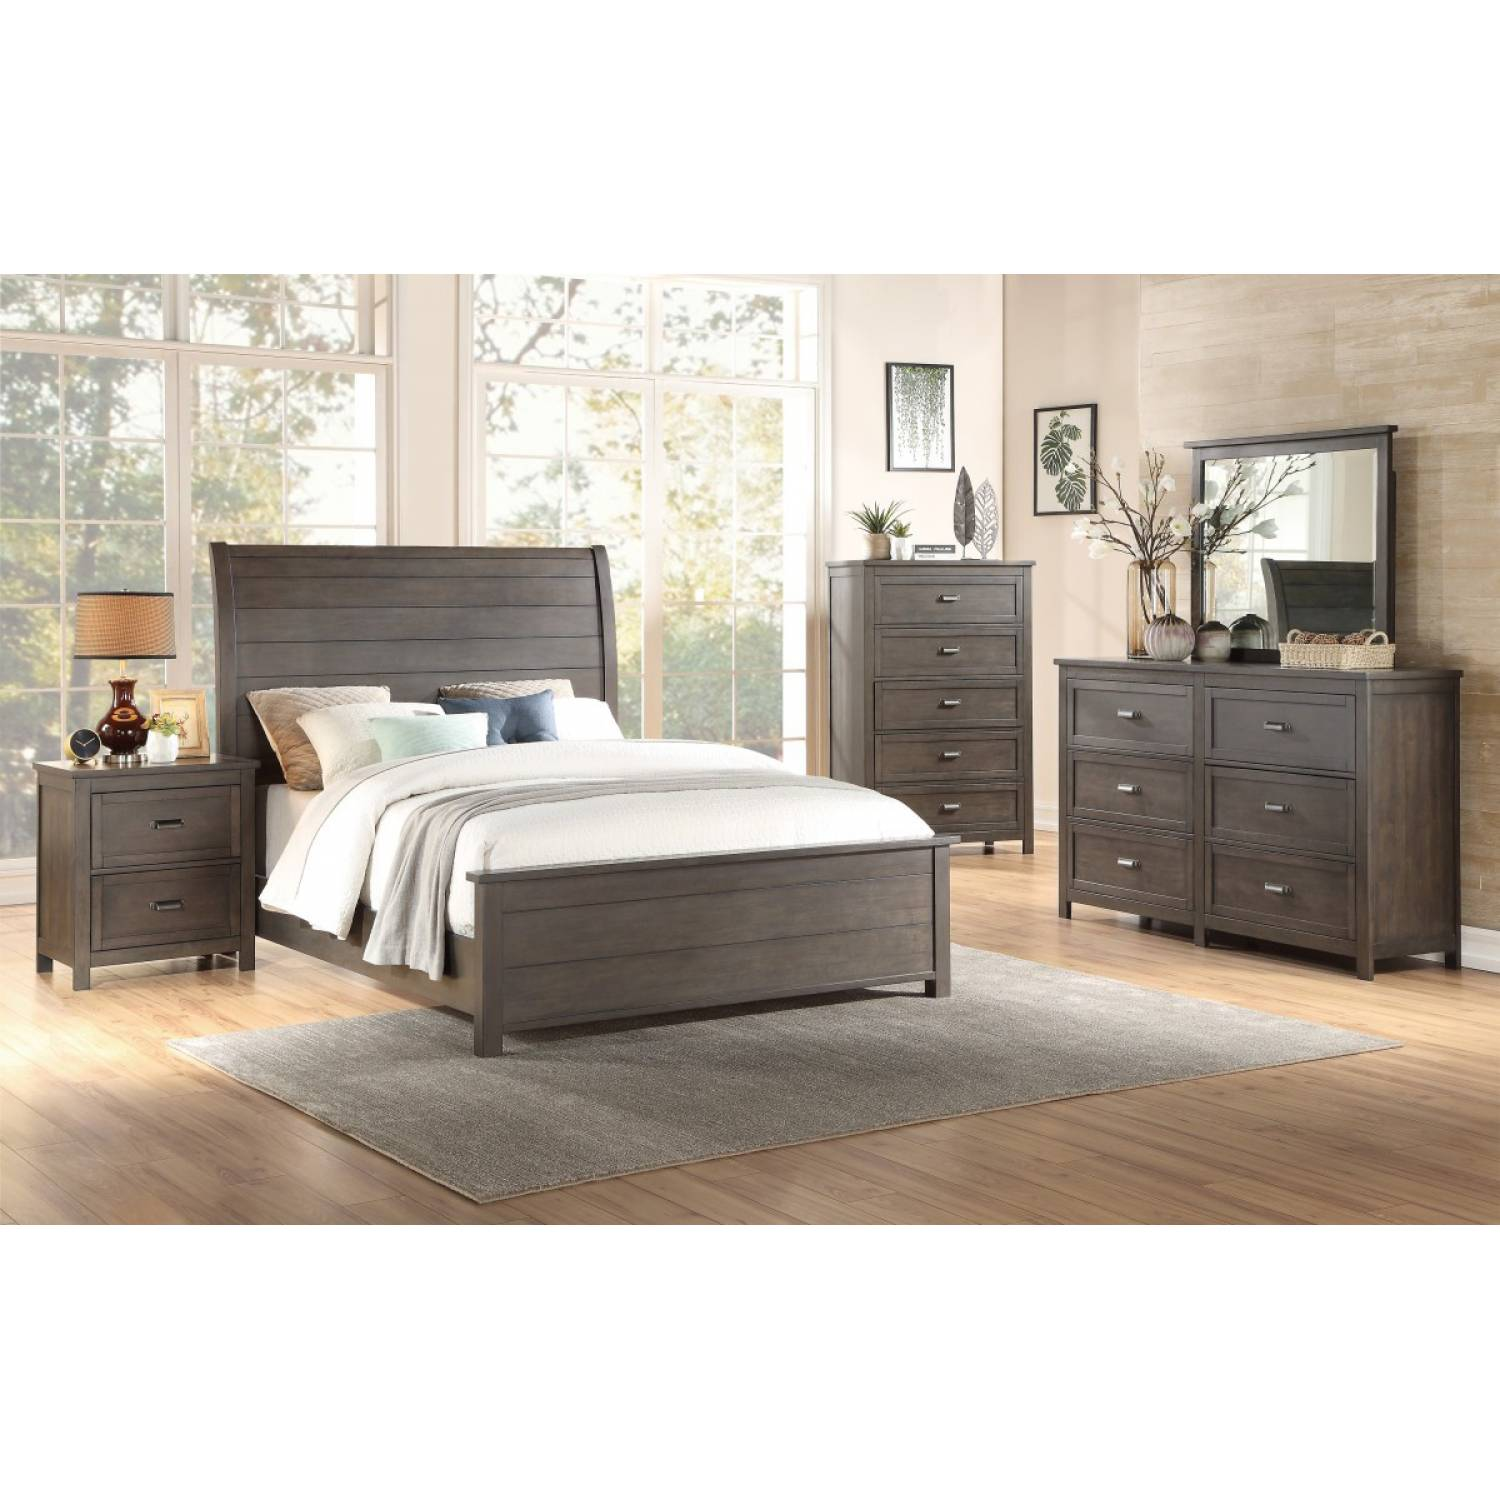 1923 Gr California King Sleigh Bedroom Set Hebron